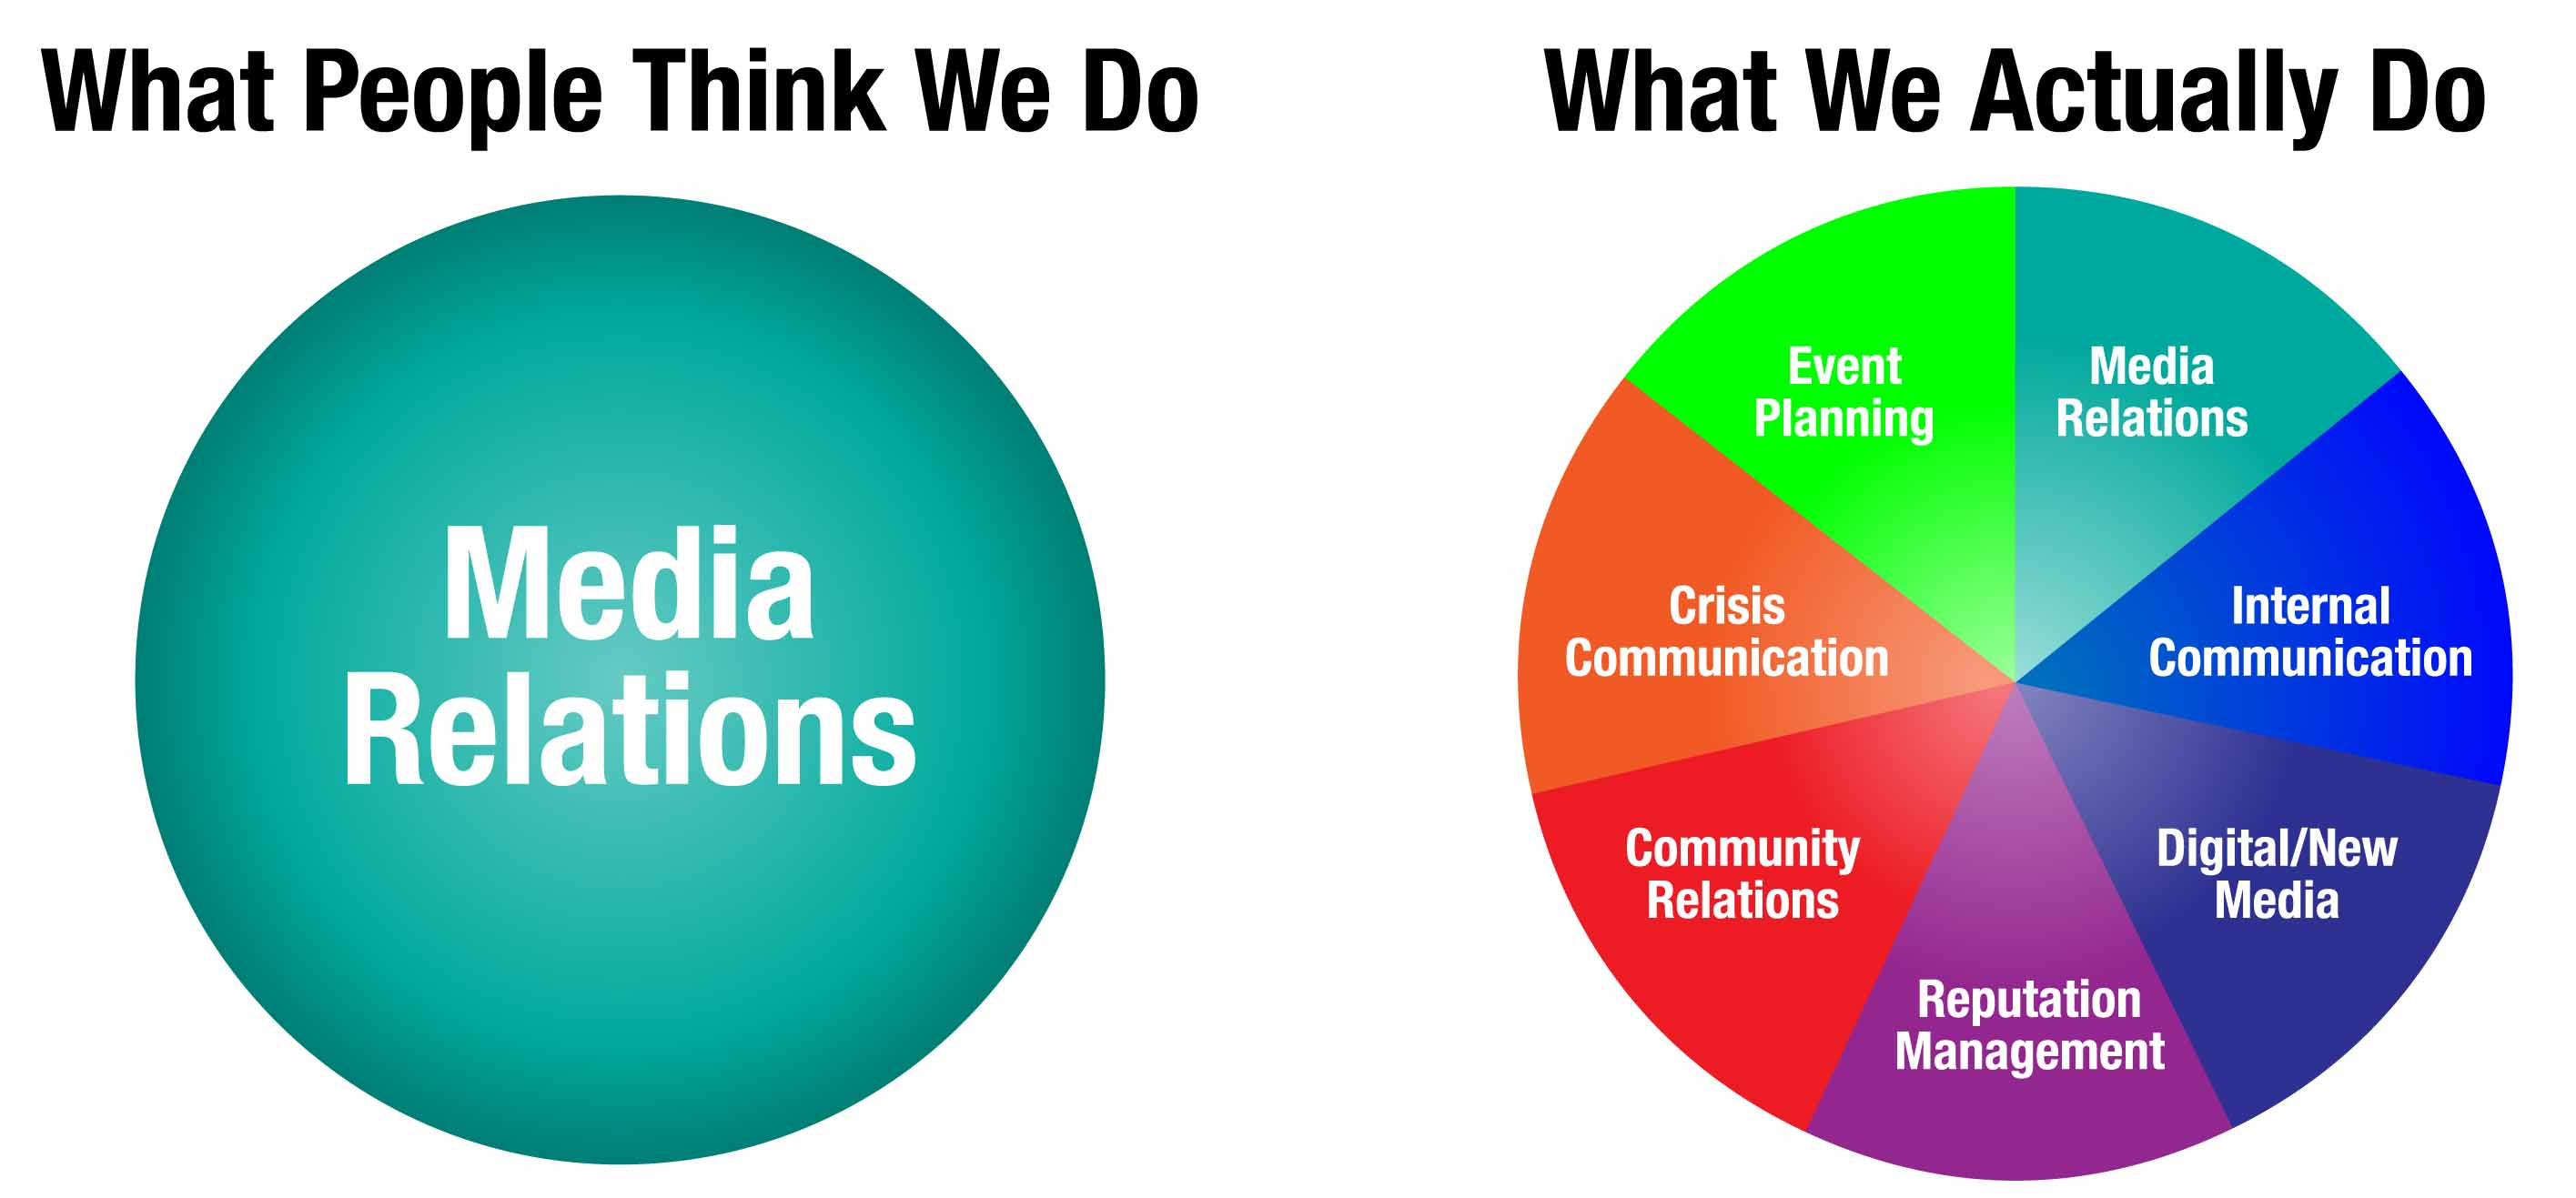 public relations perception vs reality adam snider public relations perception vs reality infographic